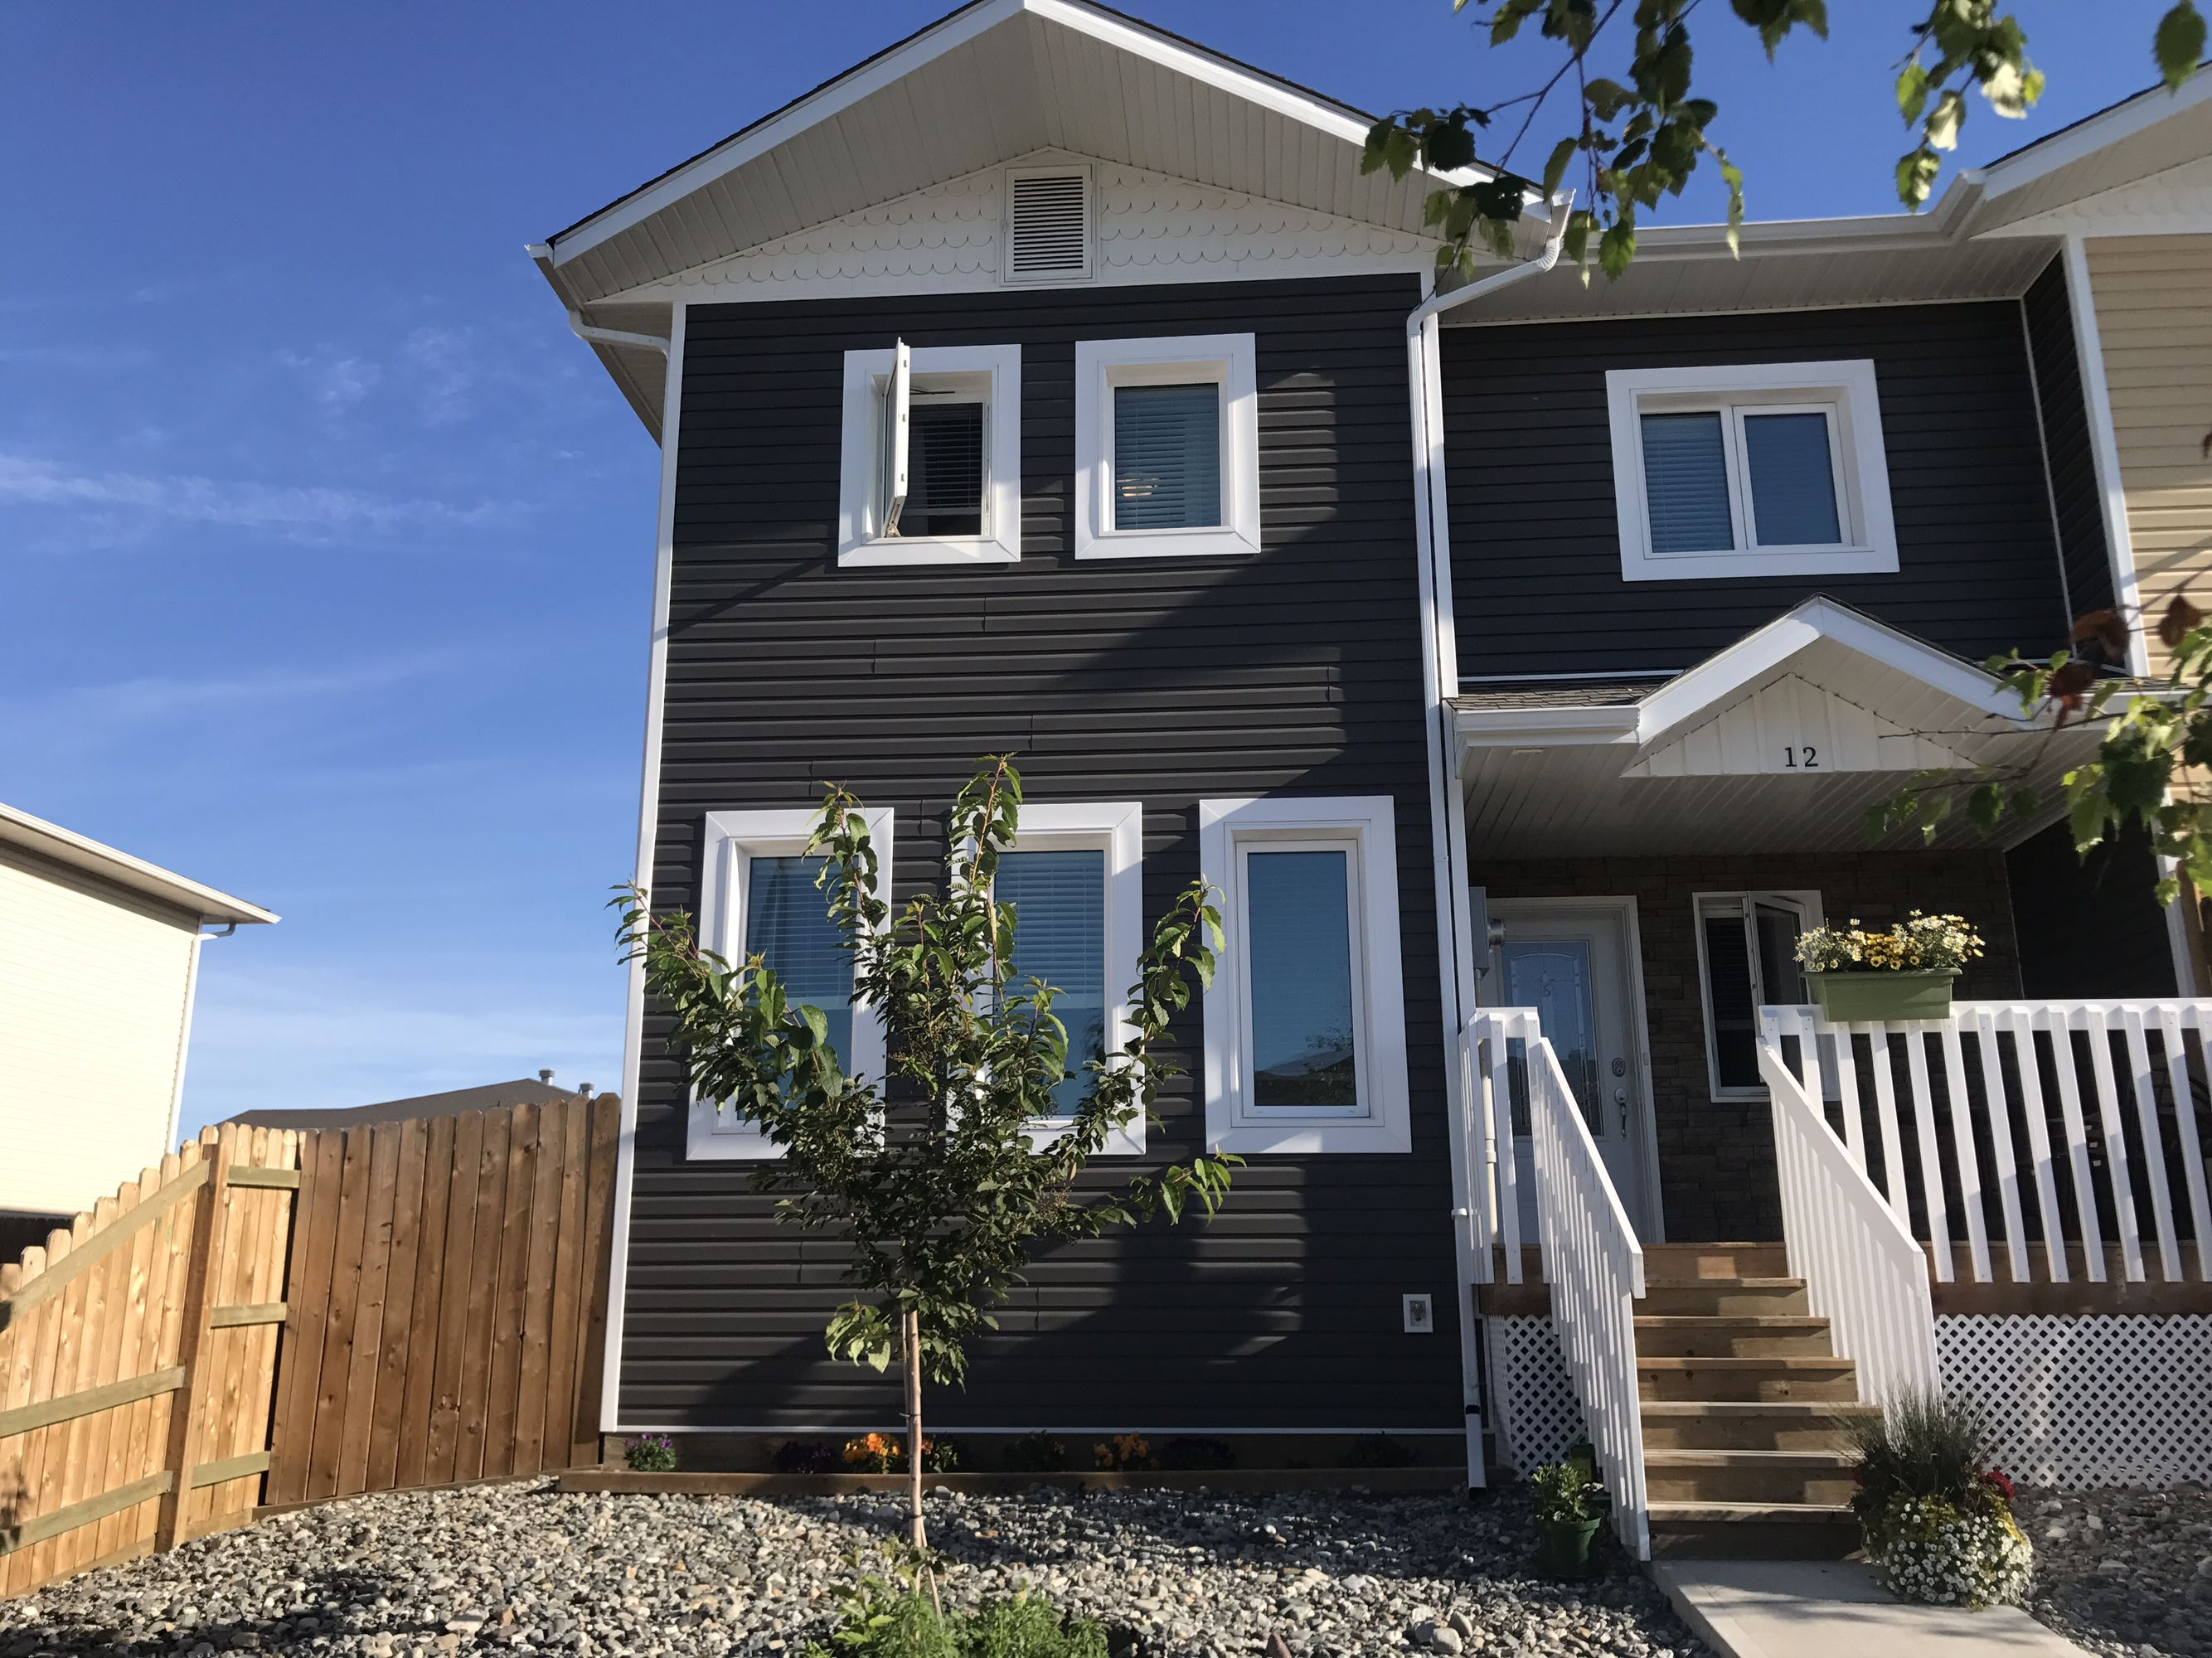 3 bedroom 2.5 bathroom Whistle Bend townhome for sale